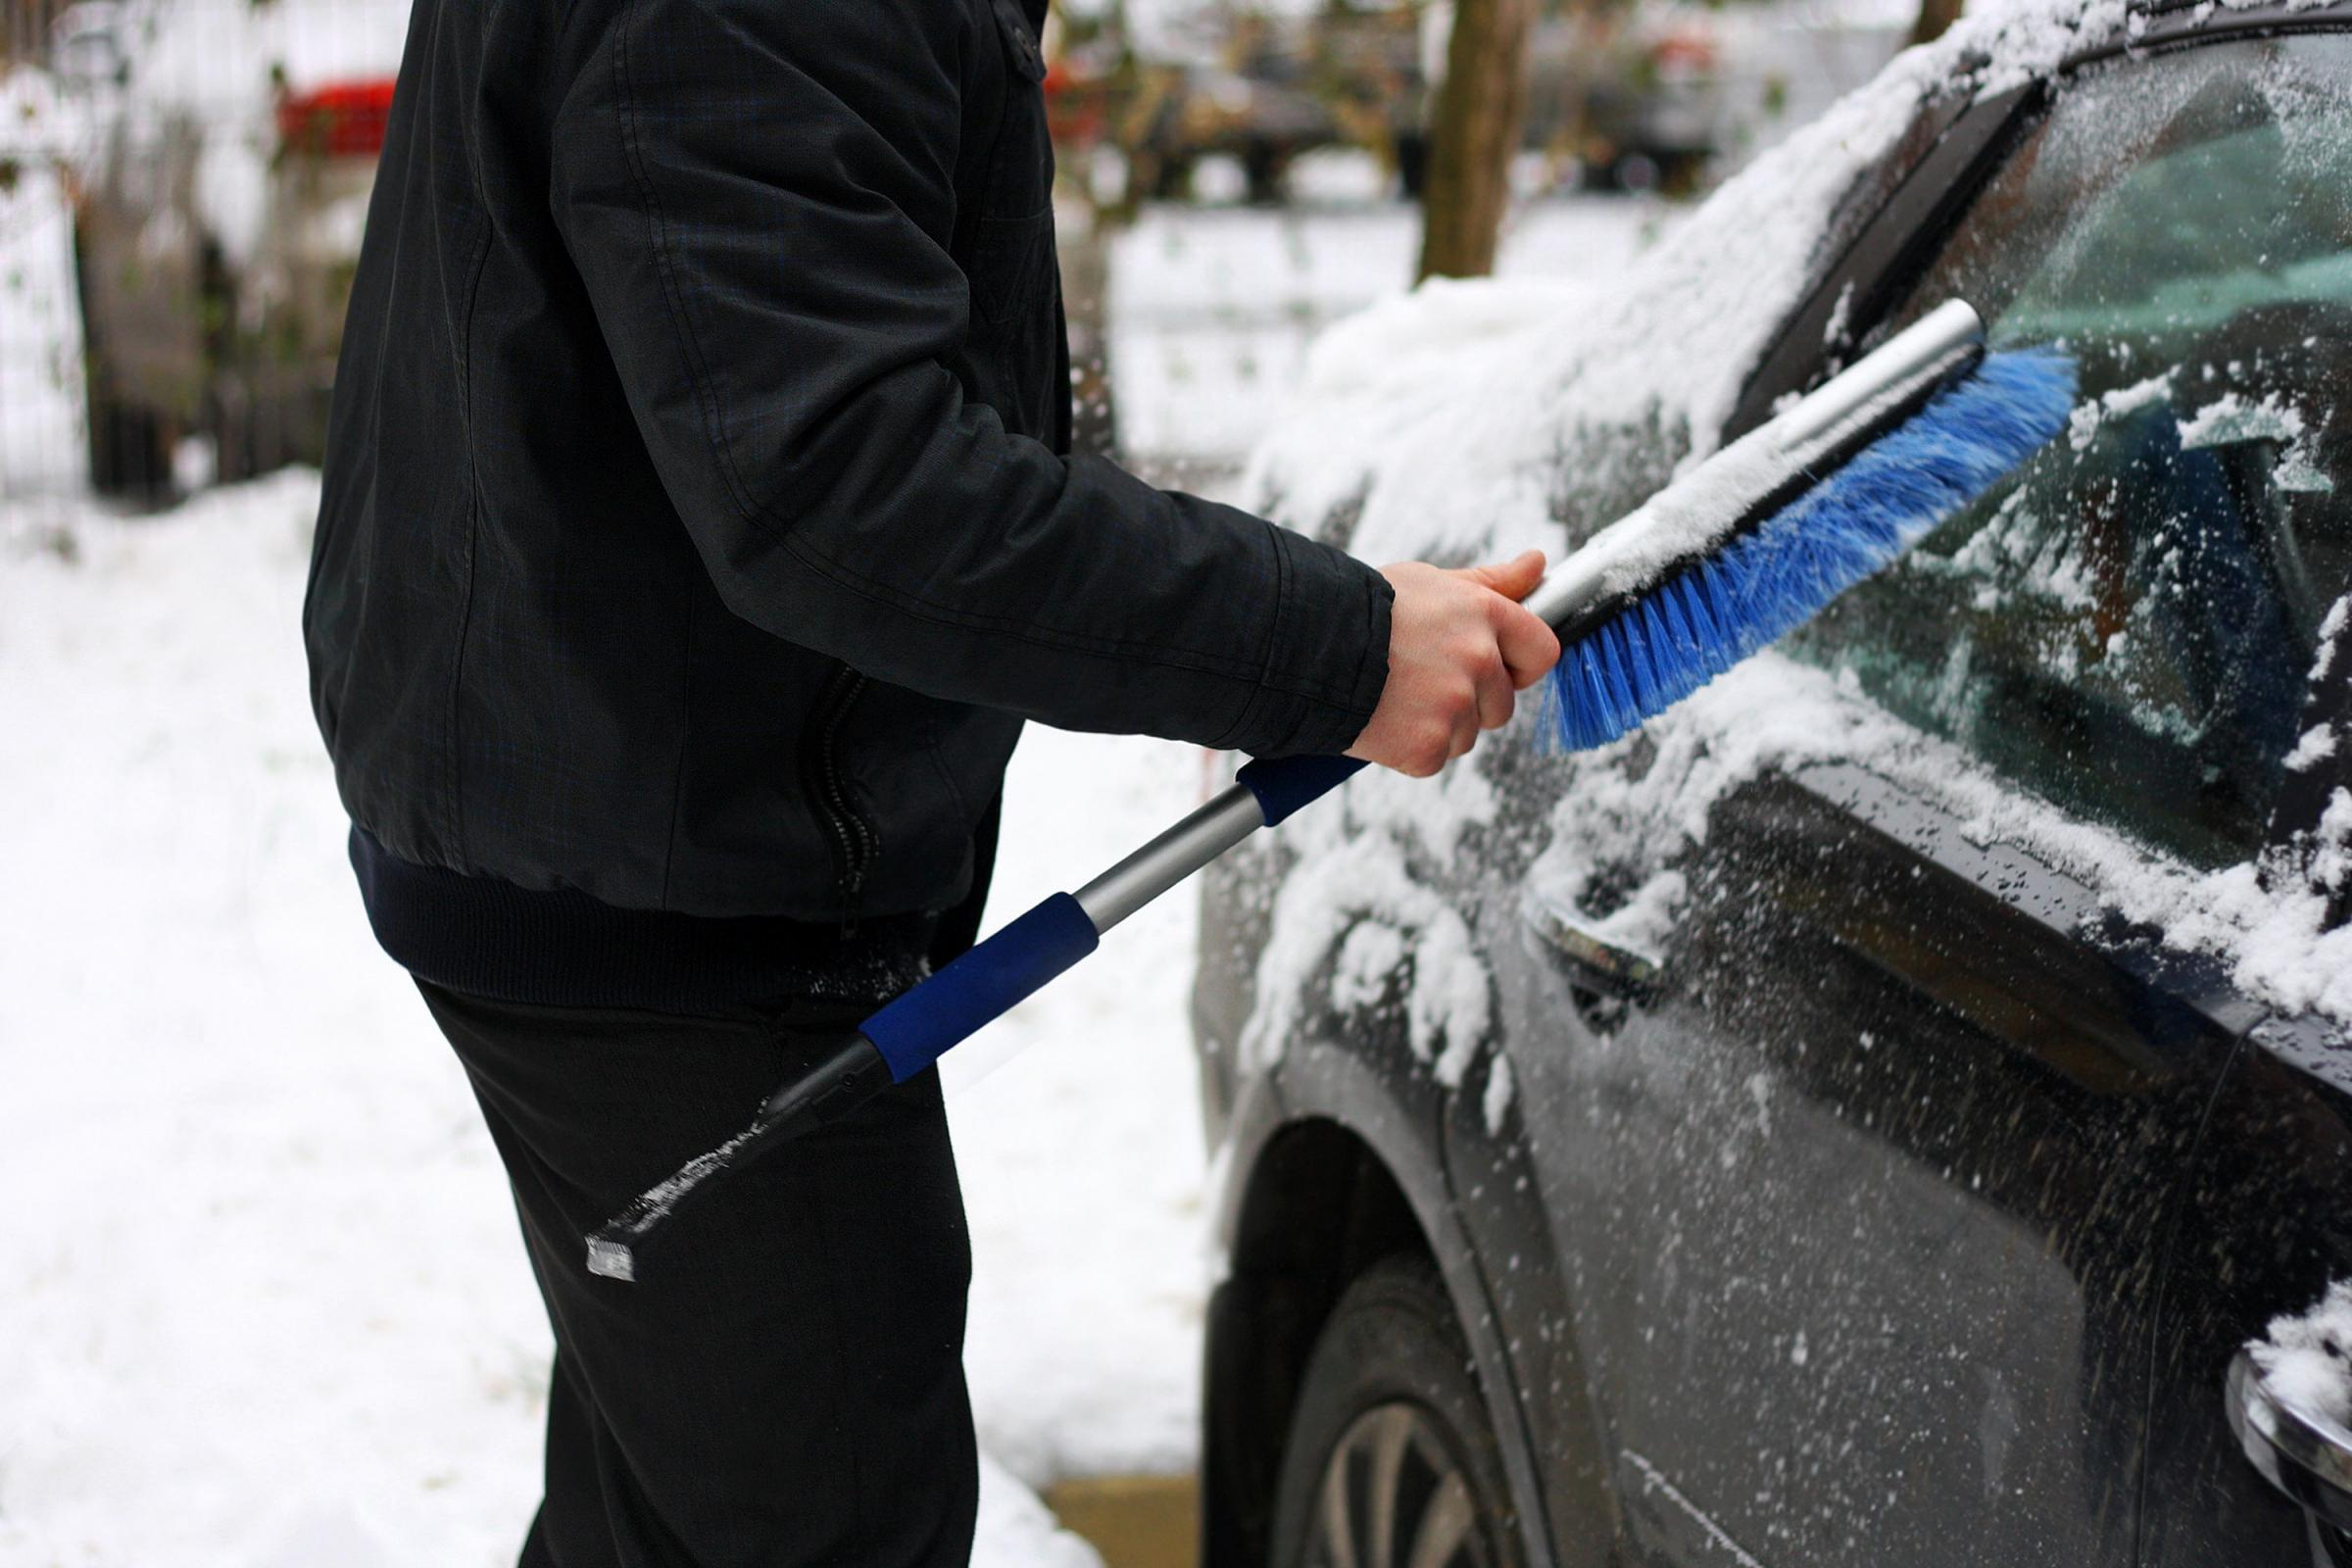 Snowy winter. The snow machine. A man cleans snow from the car with the help of special brushes..